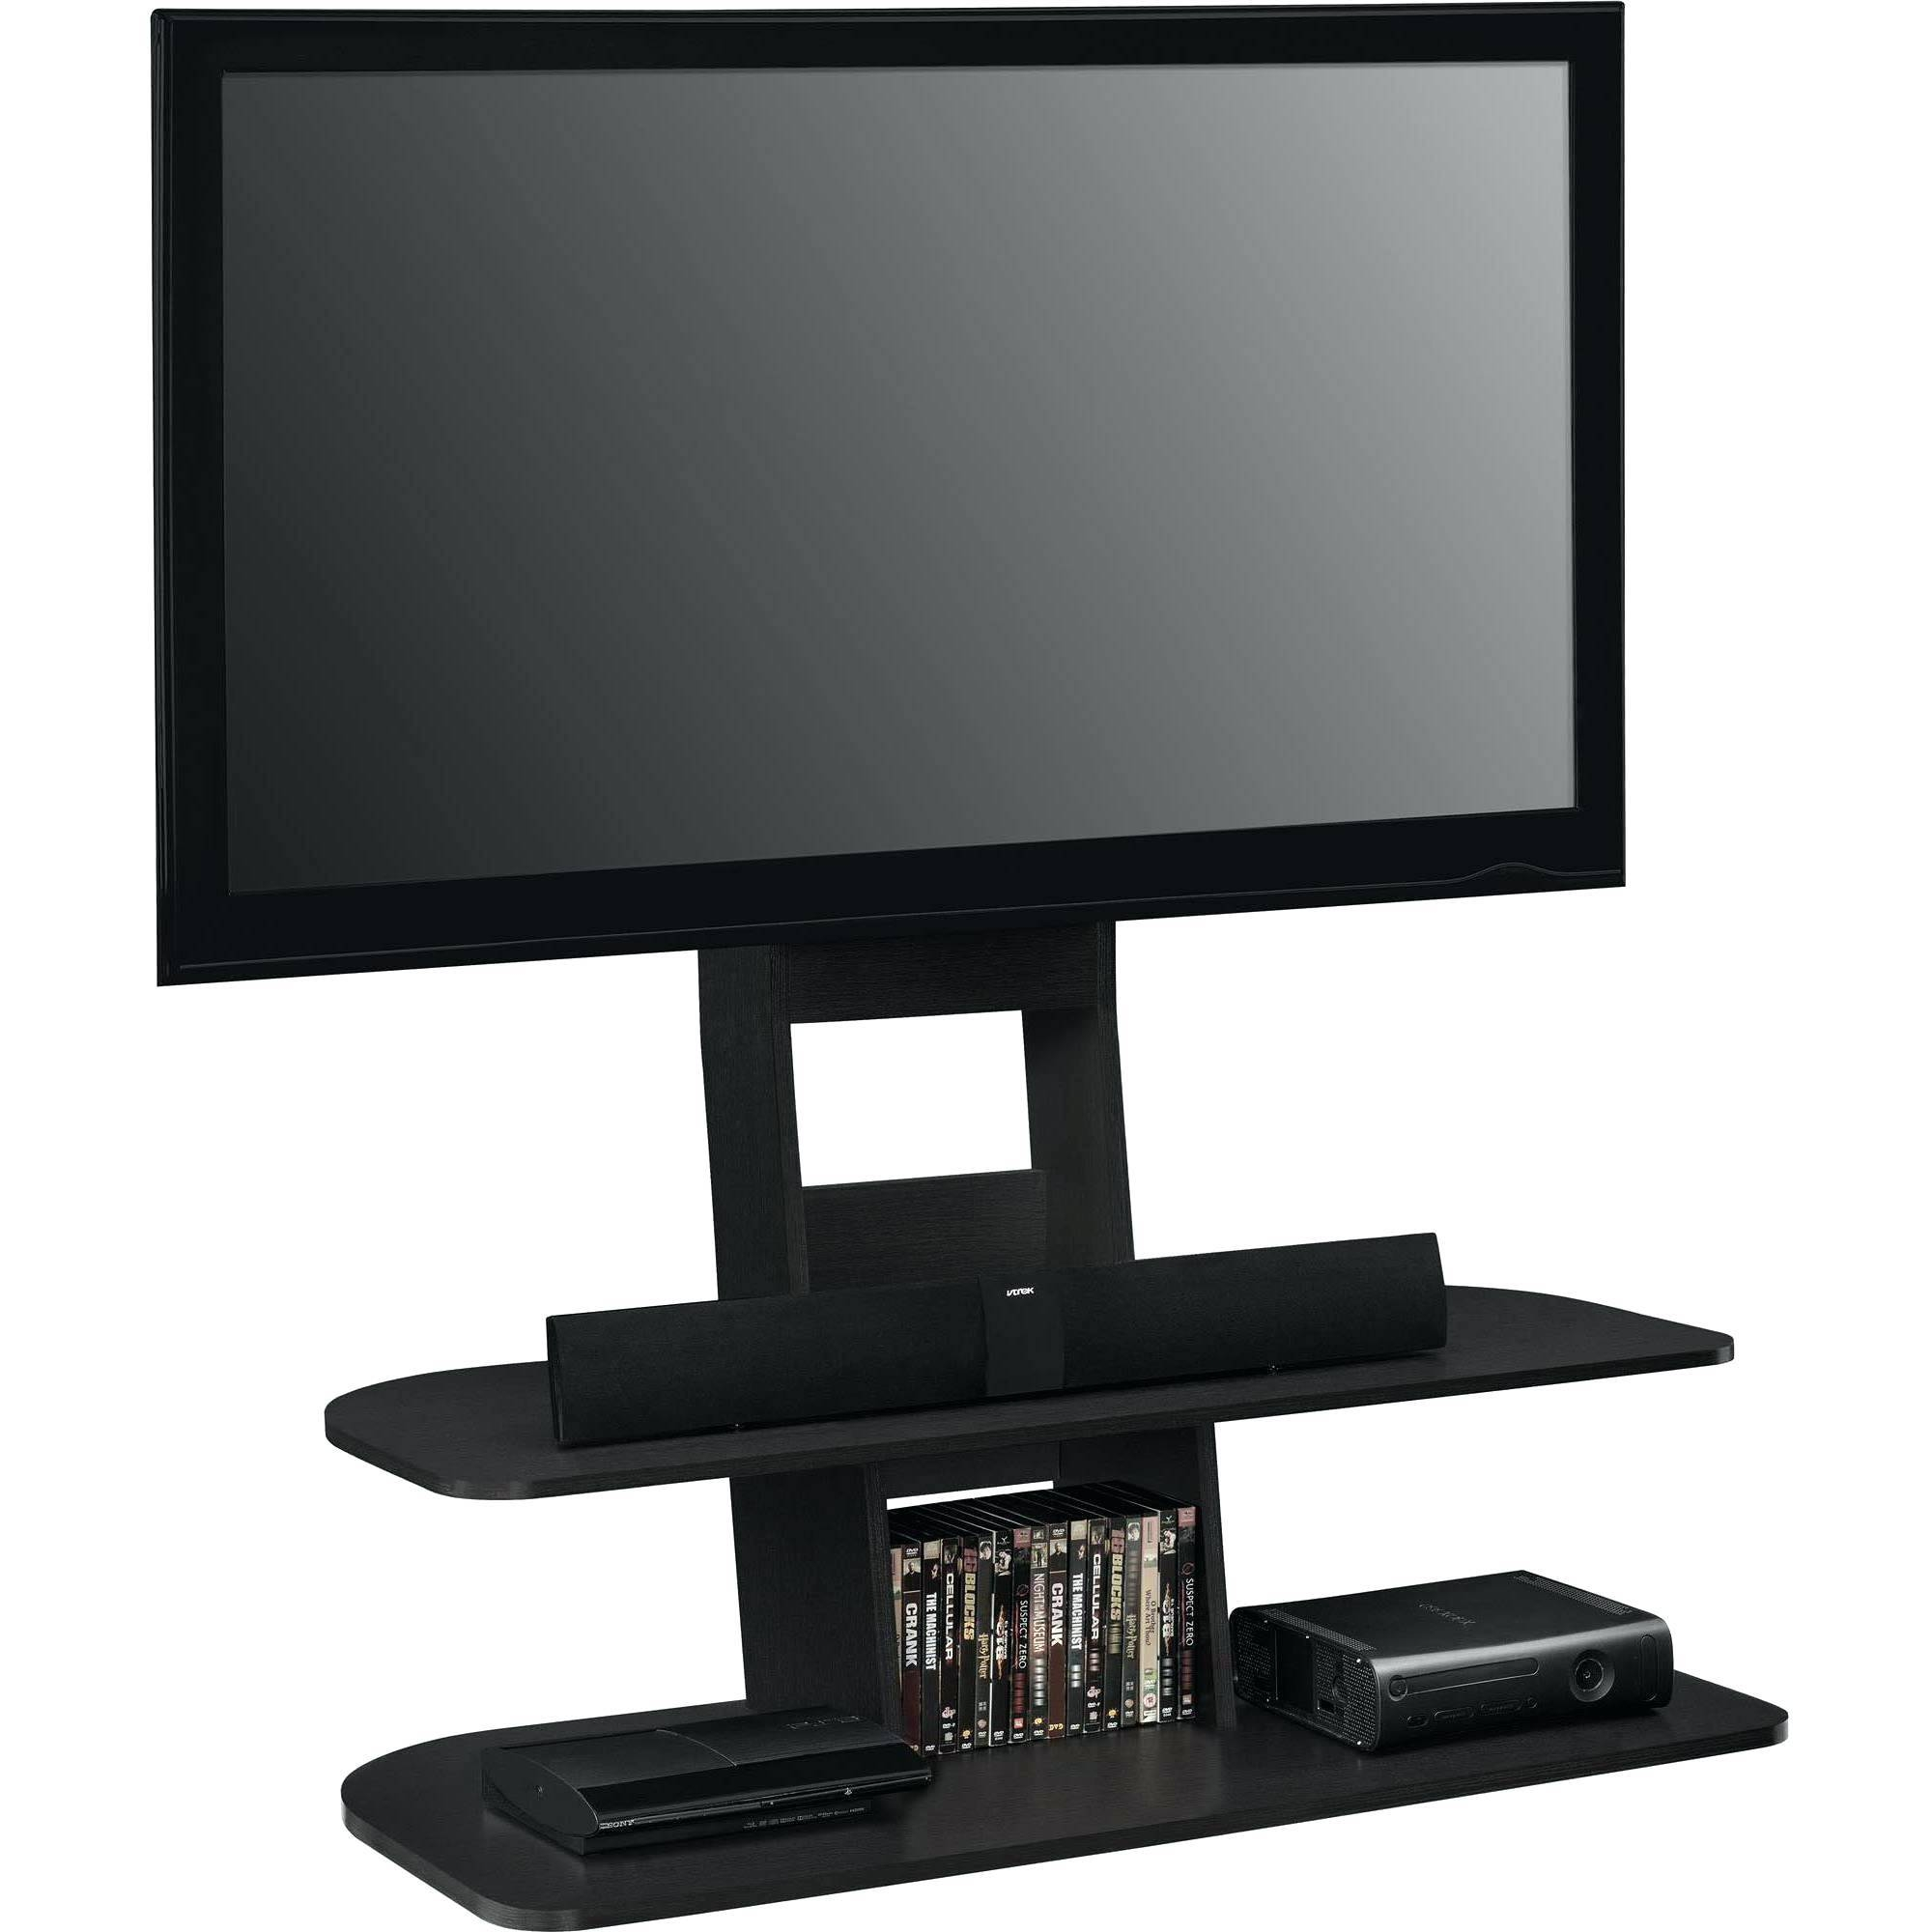 Tv Stand : Ovid Tv Stand Red 136 Awesome Terrific Ovid Tv Stand throughout Ovid White Tv Stand (Image 14 of 15)